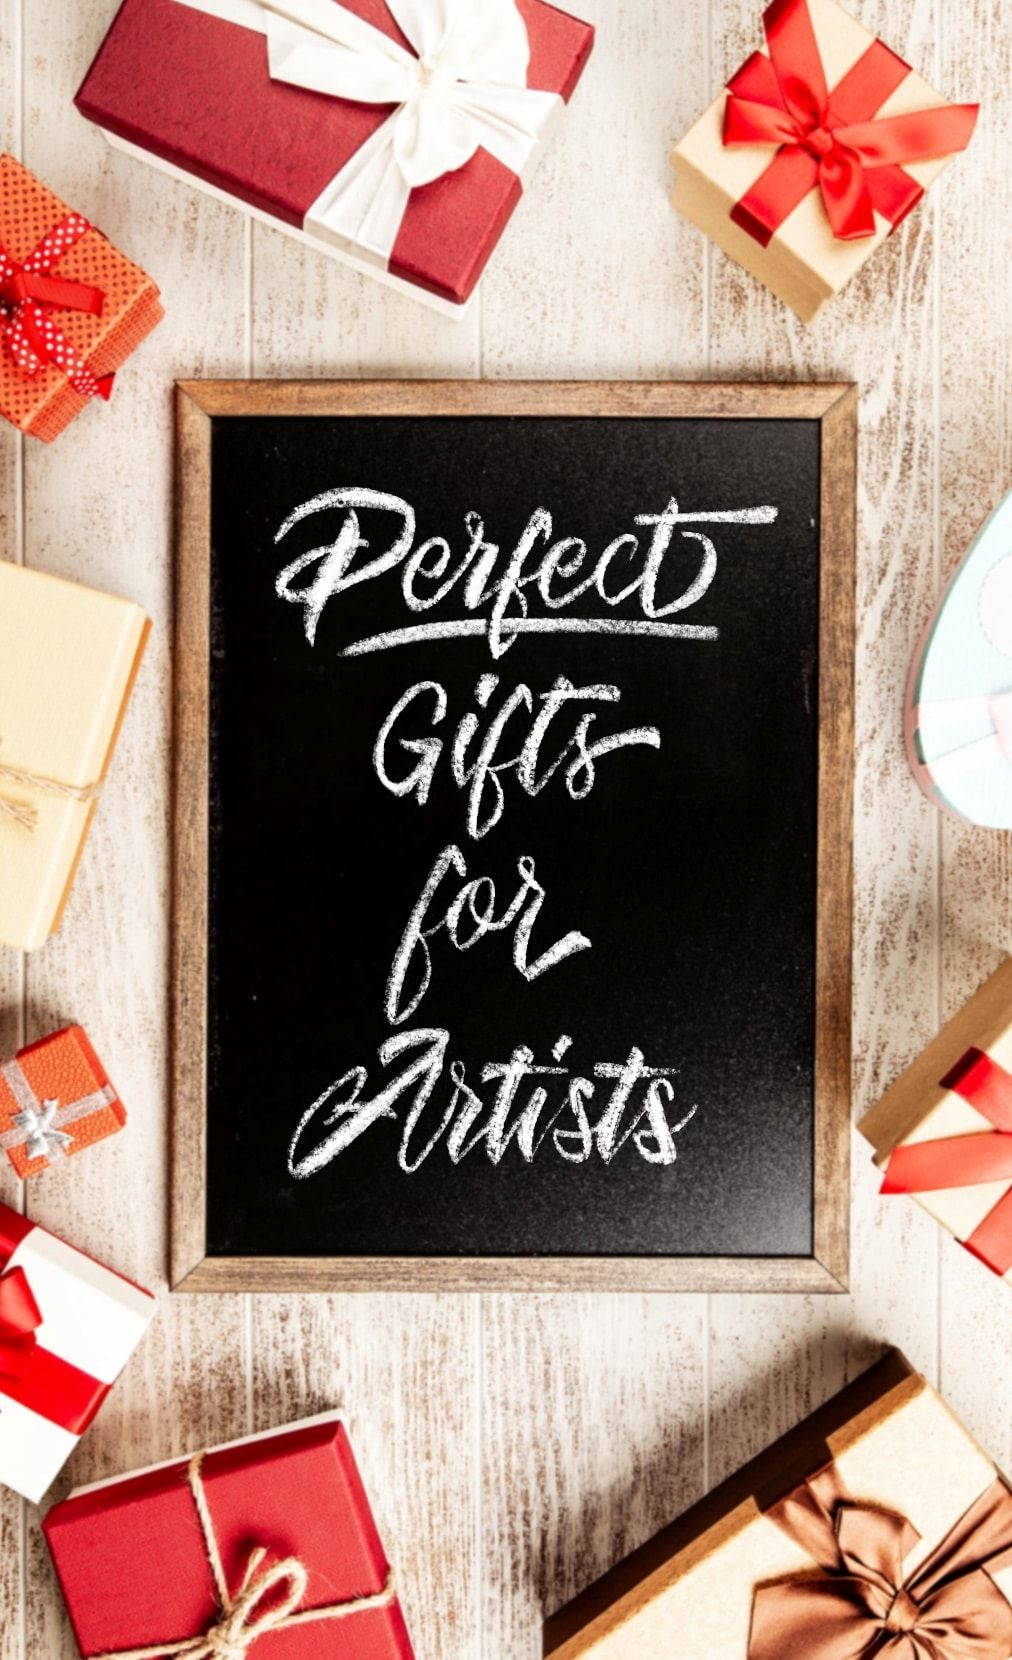 Are you on the lookout for some unique gifts for digital